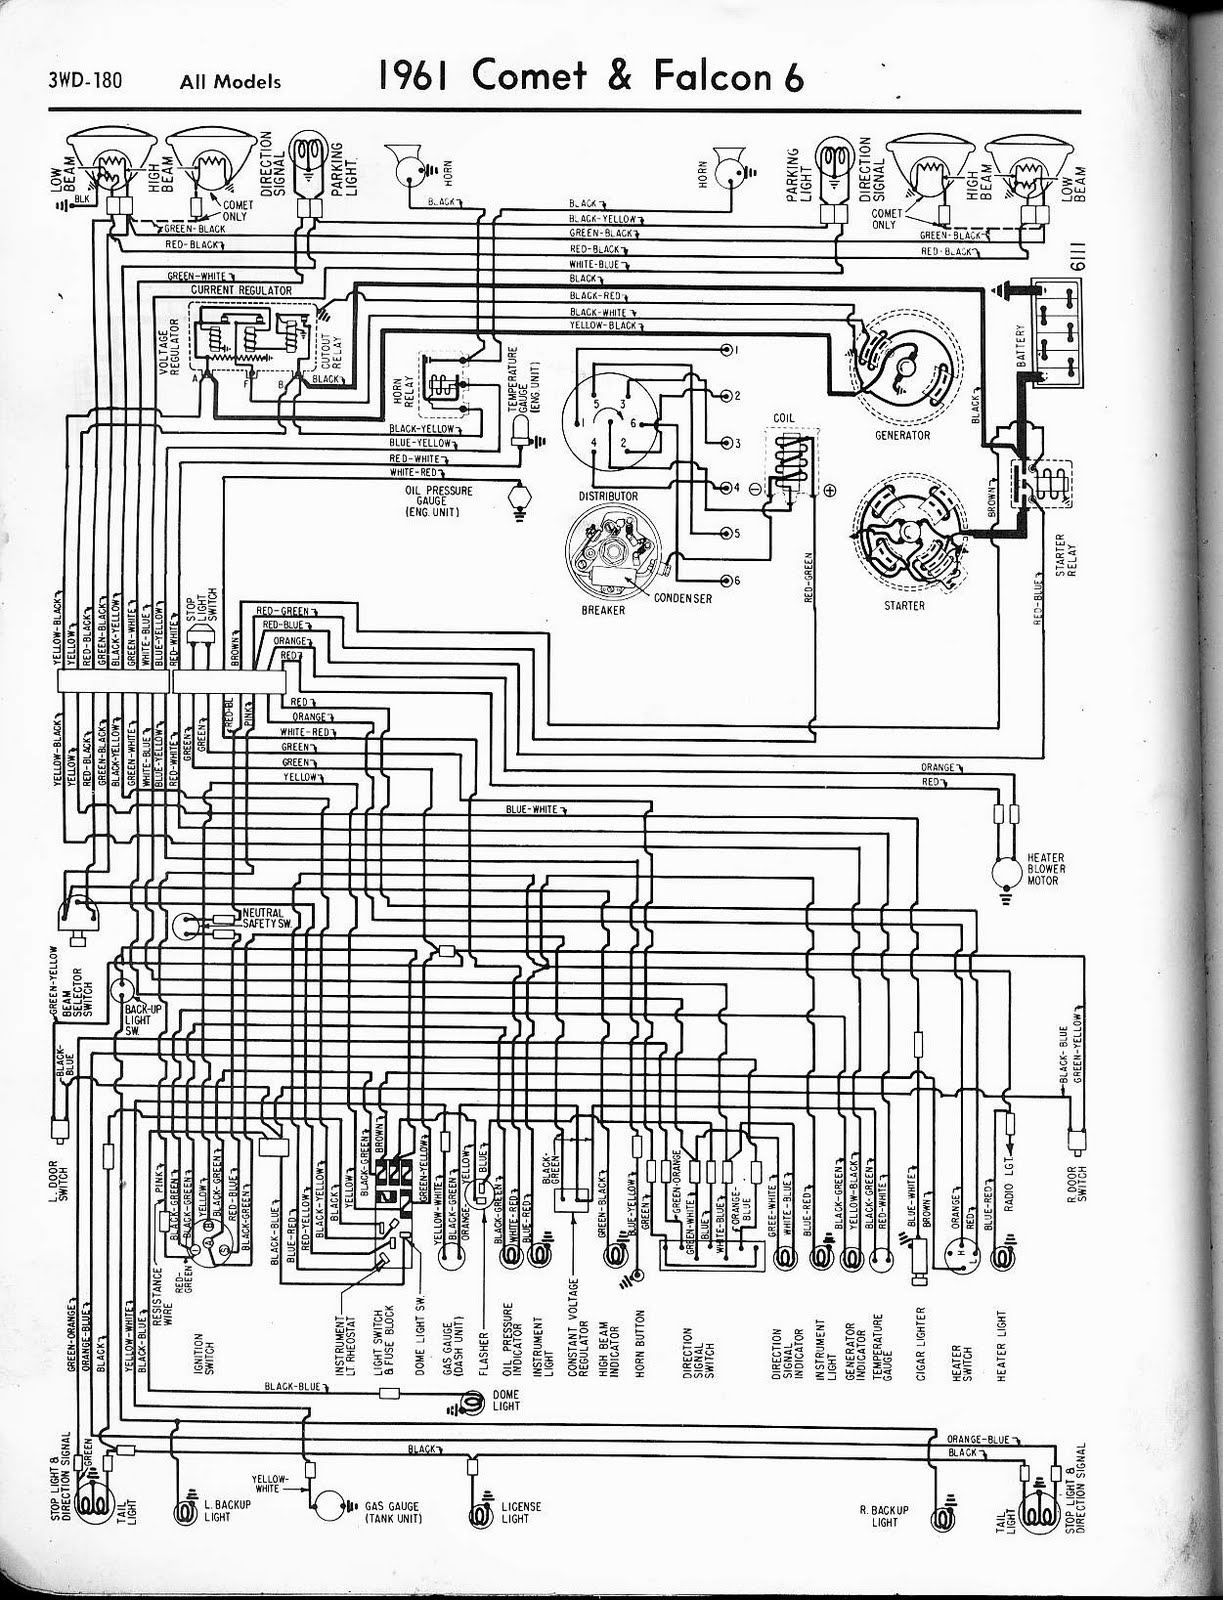 1964 Ford Falcon Ignition Switch Wiring Trusted Wiring Diagram 65 Ford  Mustang Ignition Switch Wiring 1964 Ford Falcon Ignition Switch Wiring  Diagram